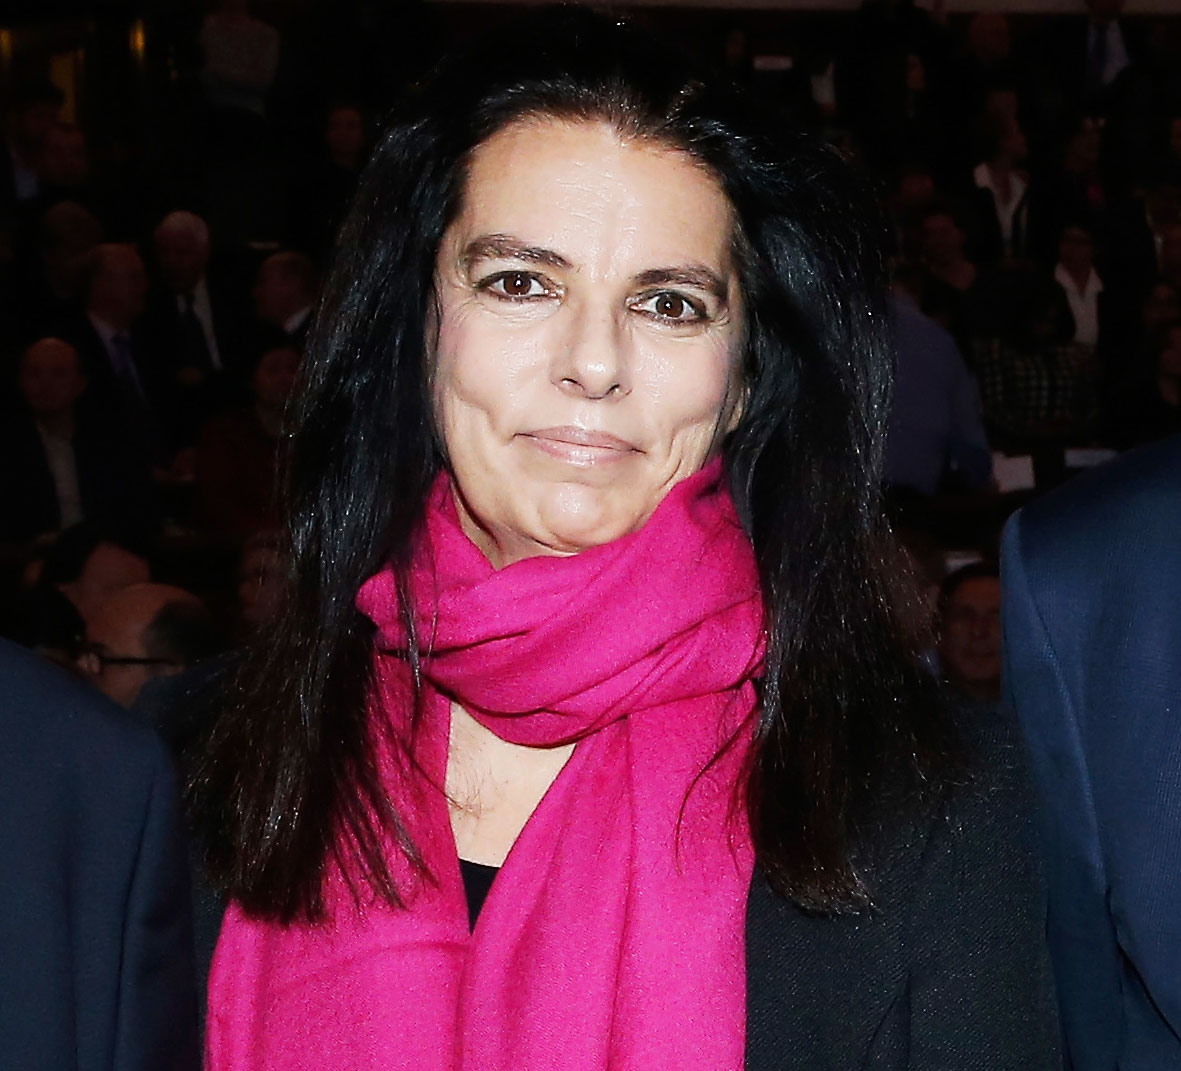 Meet the New World's Richest Woman: A 64-Year-Old Expert on Greek Gods